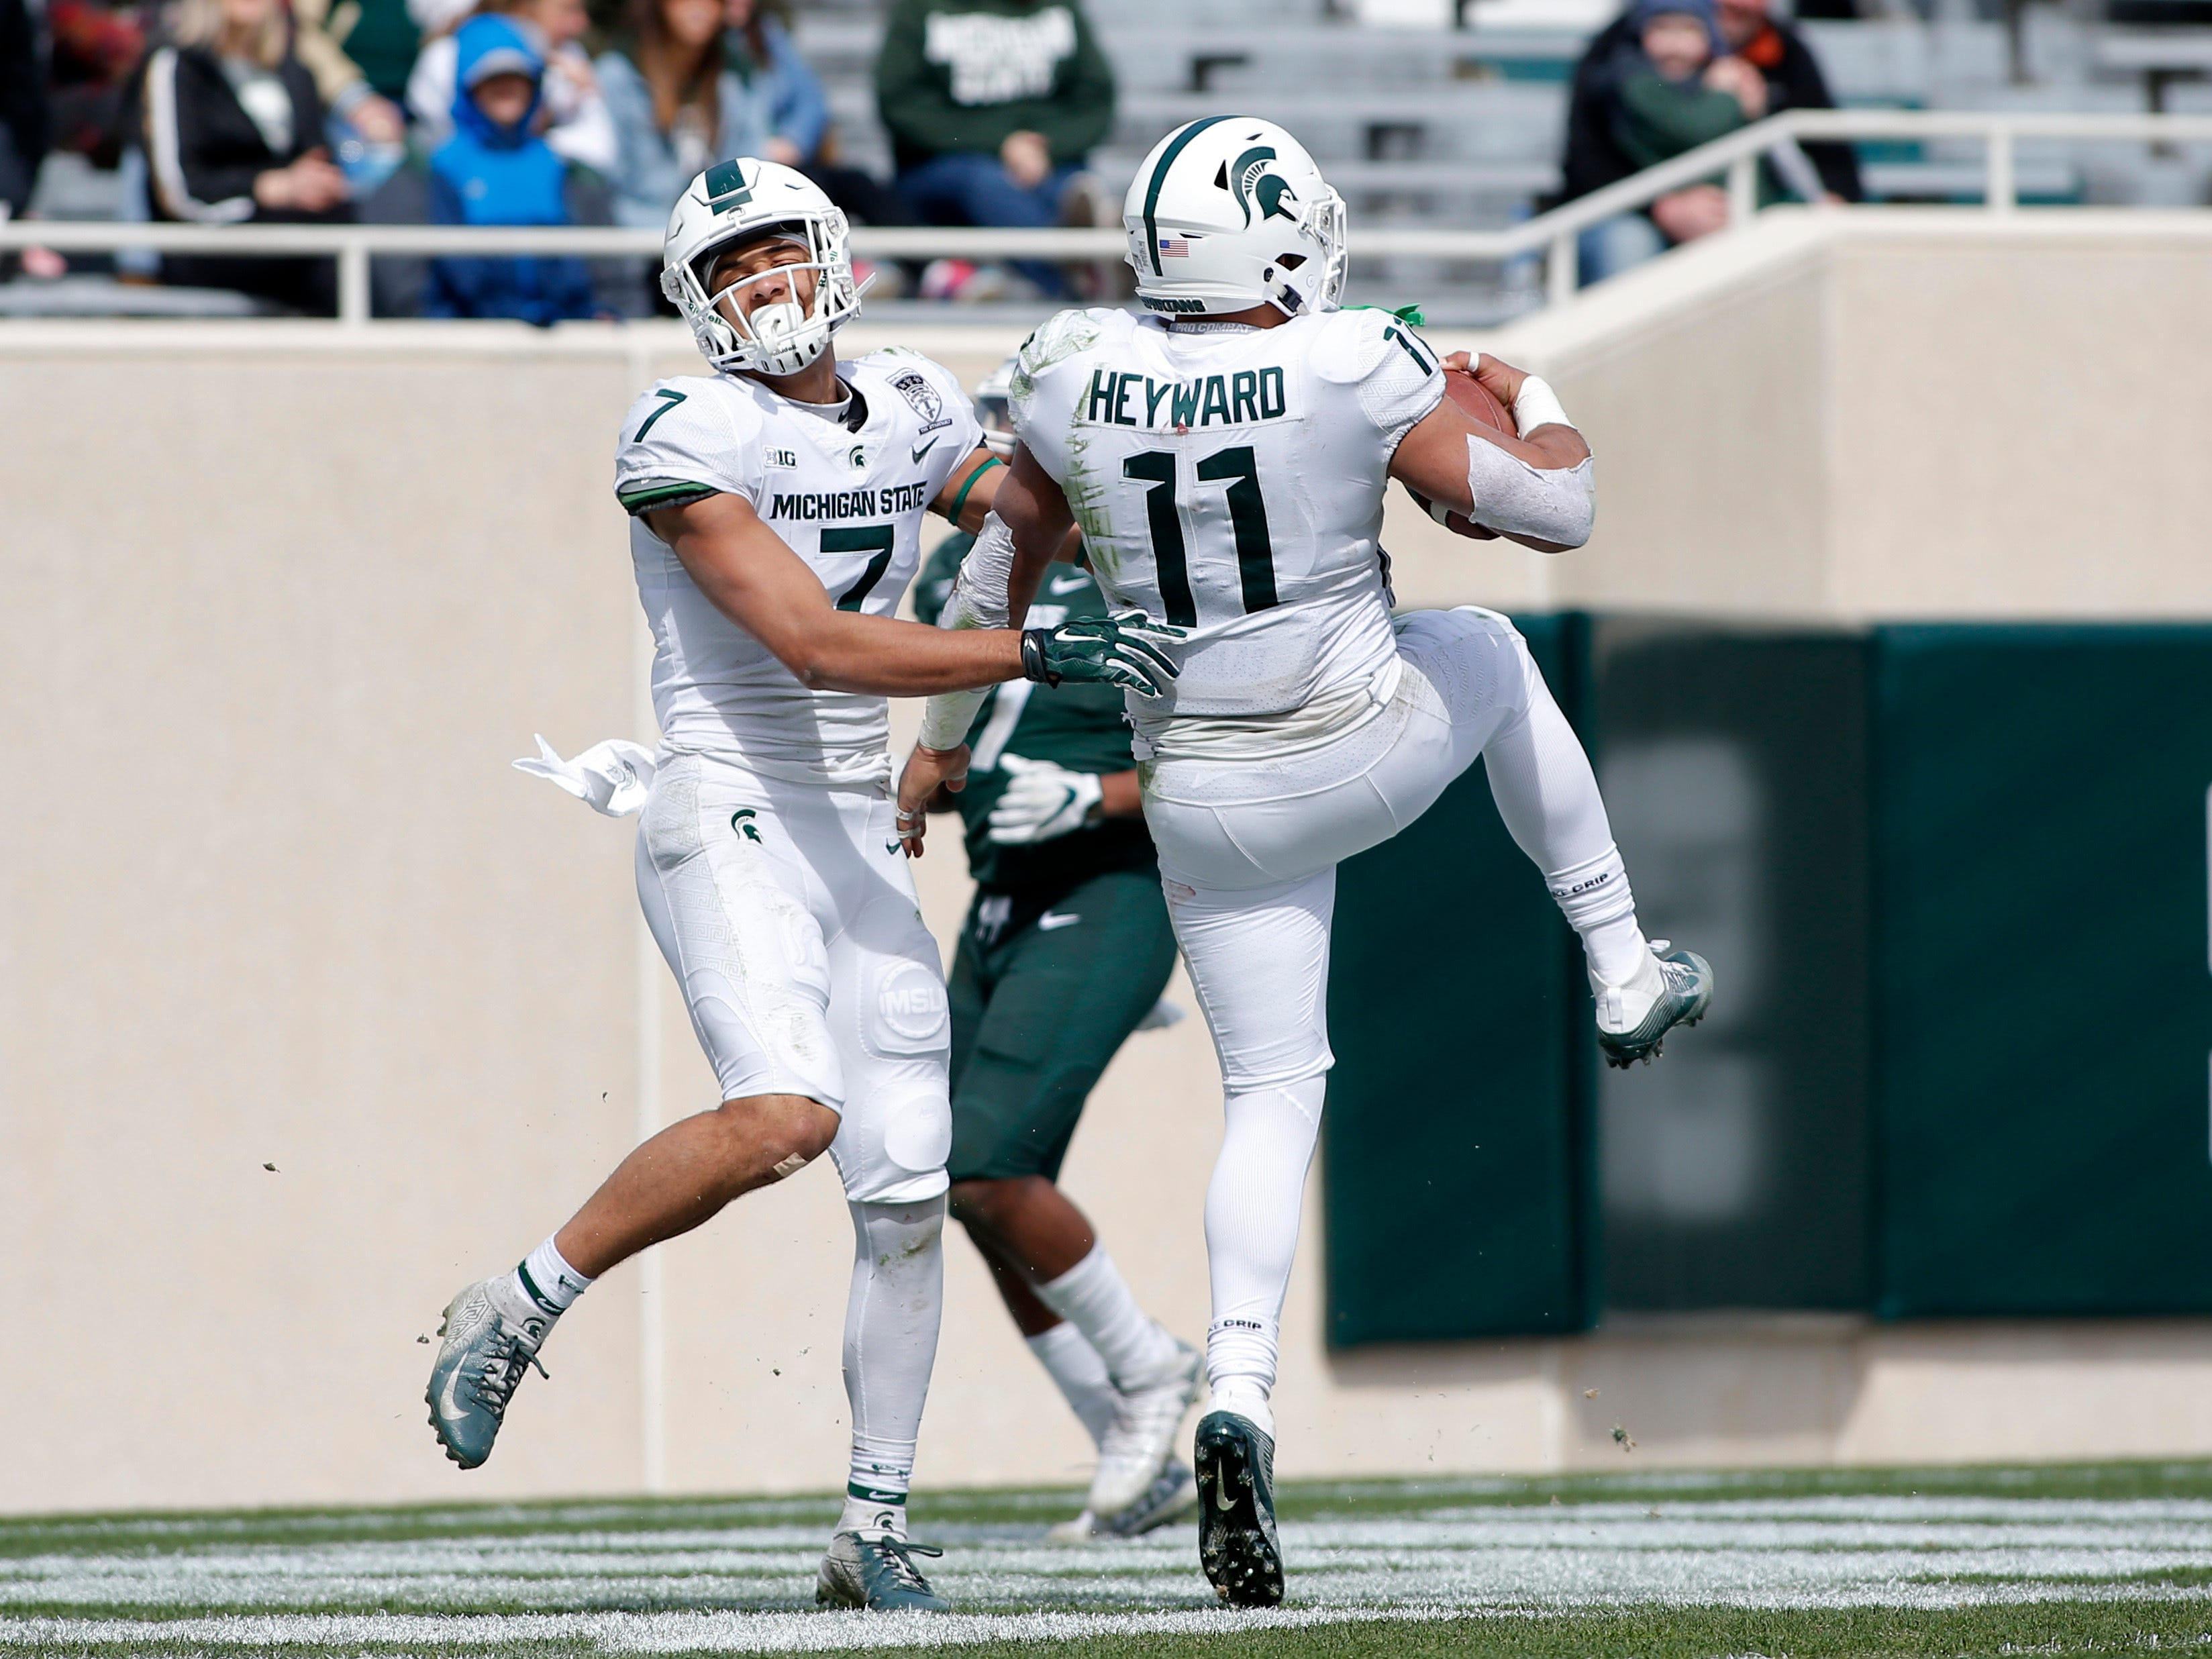 Michigan State's Connor Heyward and Cody White (7) celebrate Heyward's touchdown during a spring scrimmage Saturday, April 13, 2019, in East Lansing.